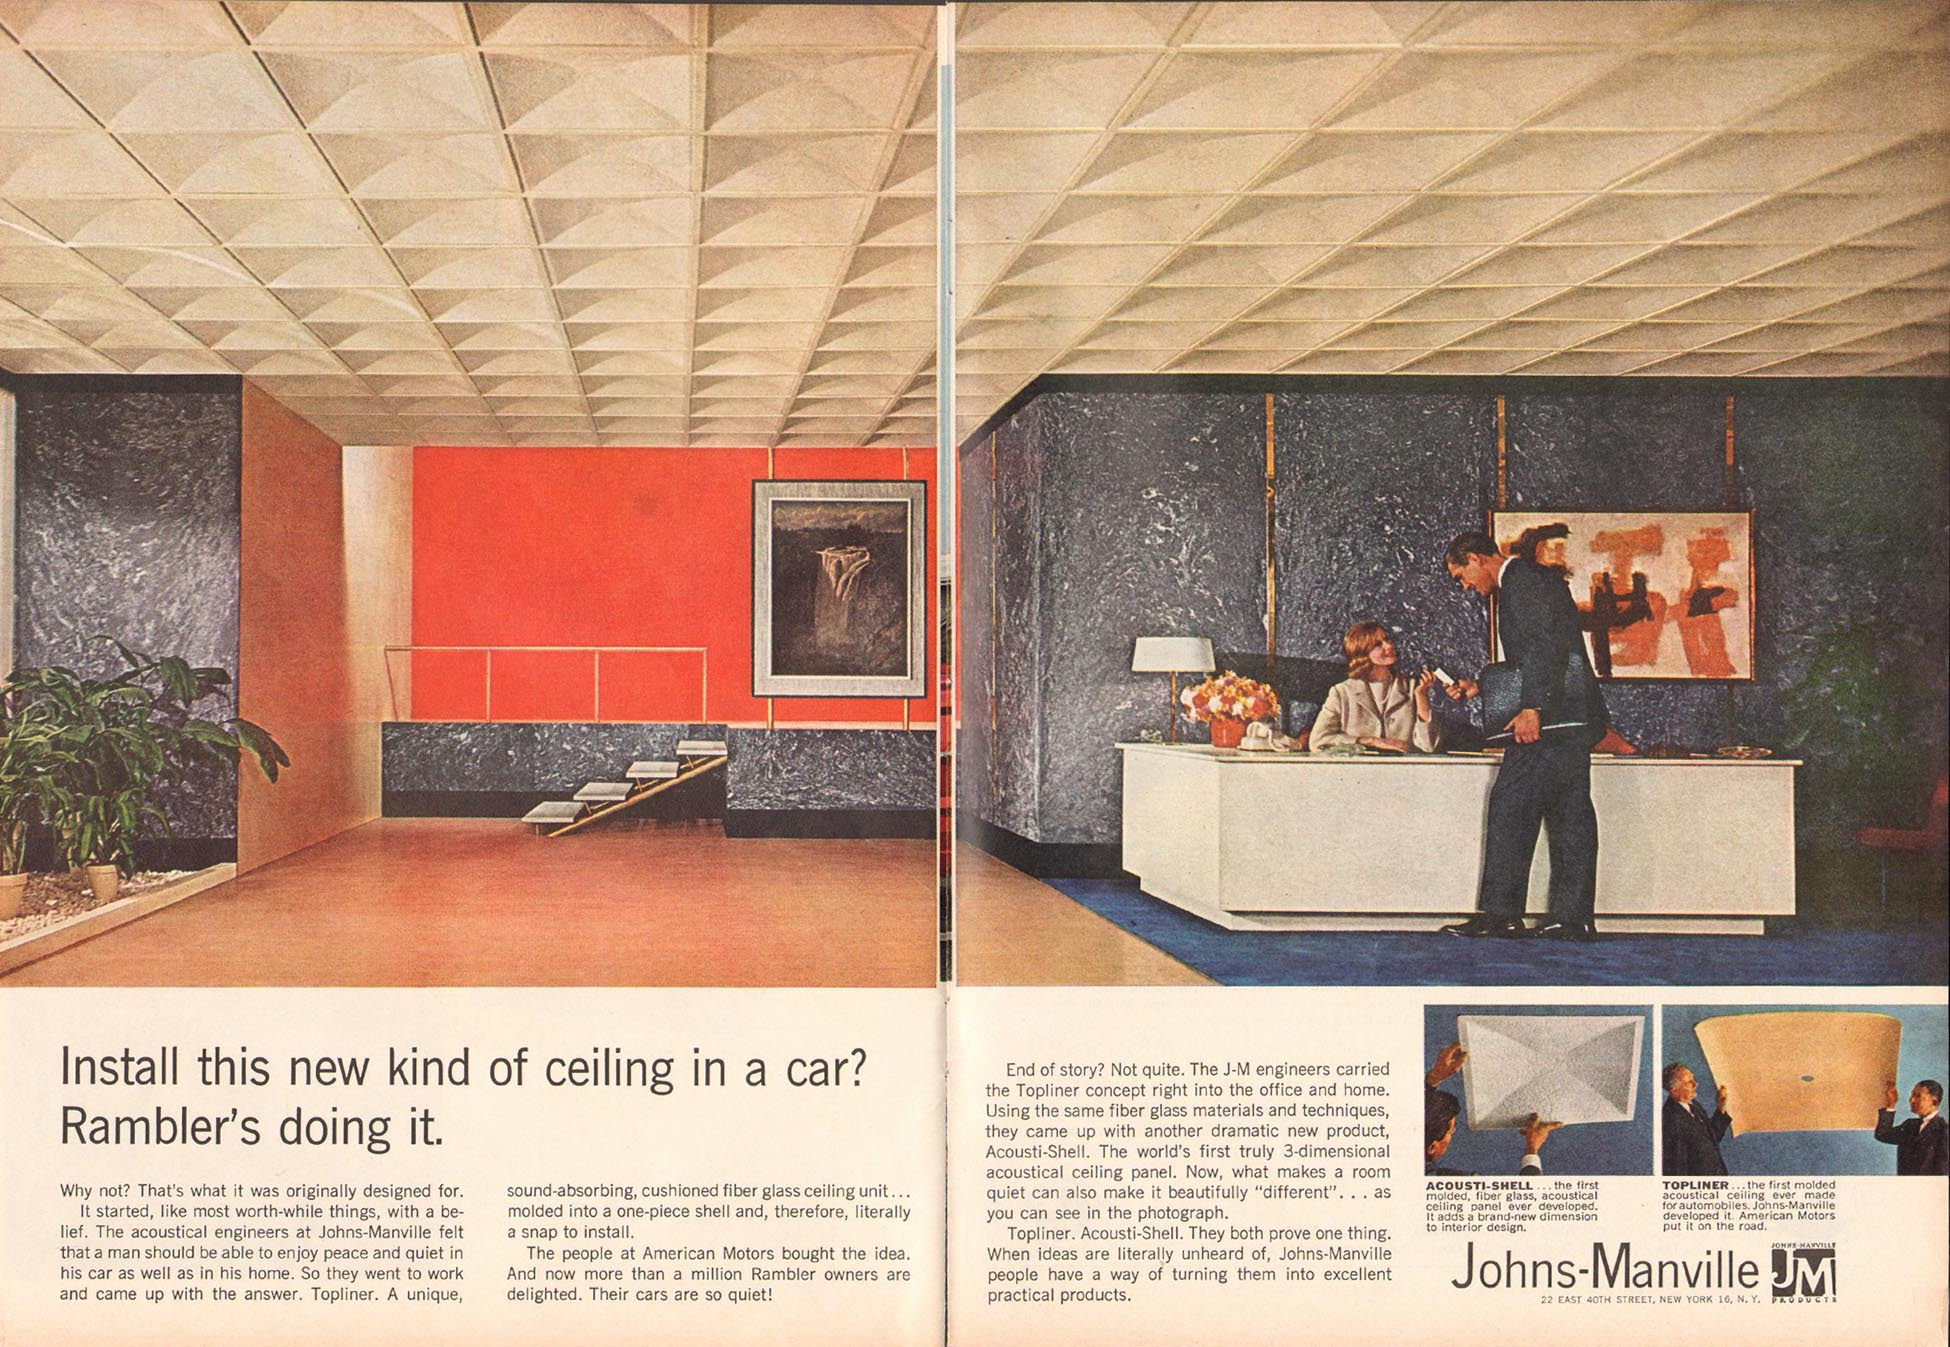 ACOUSTI-SHELL FIBER GLASS CEILING UNITS